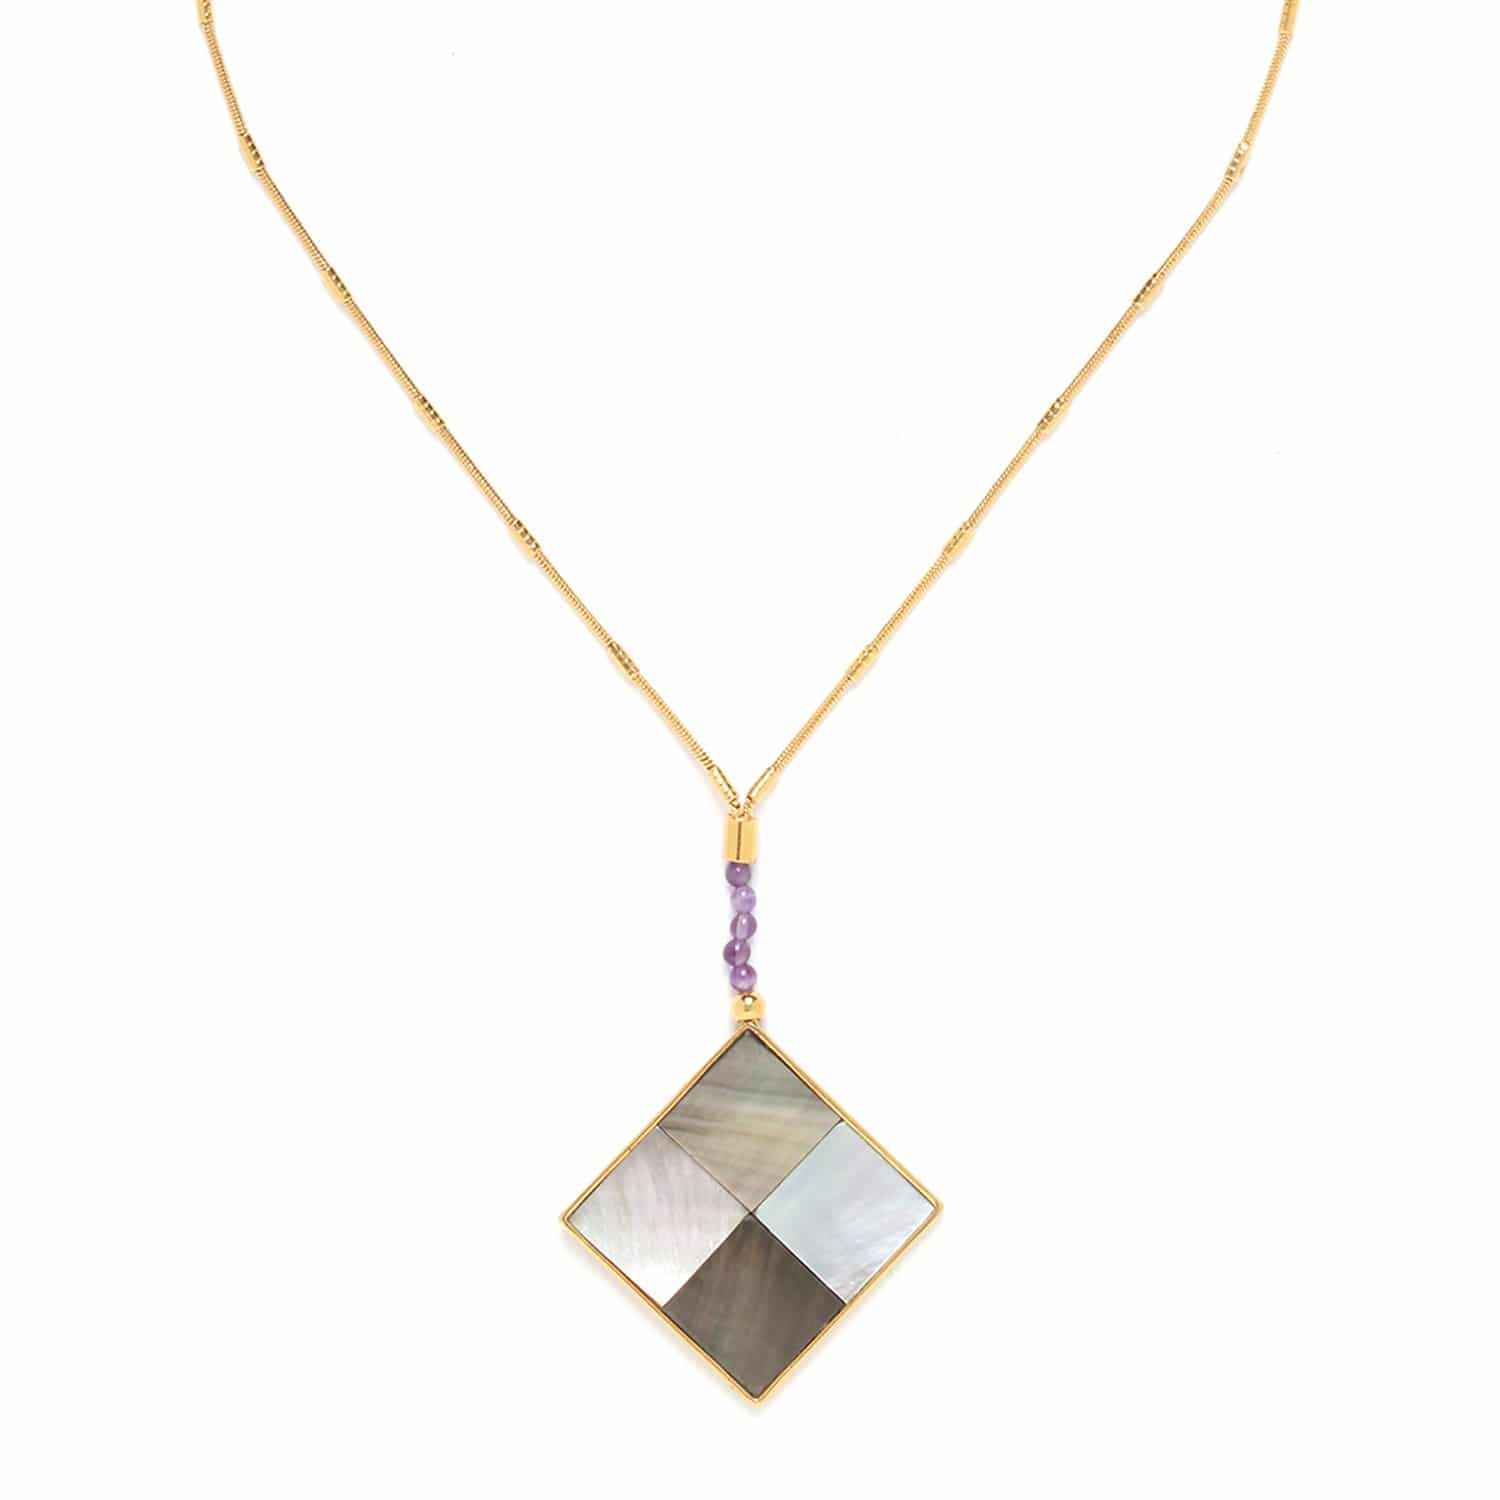 LE SQUARE collier grand pendentif